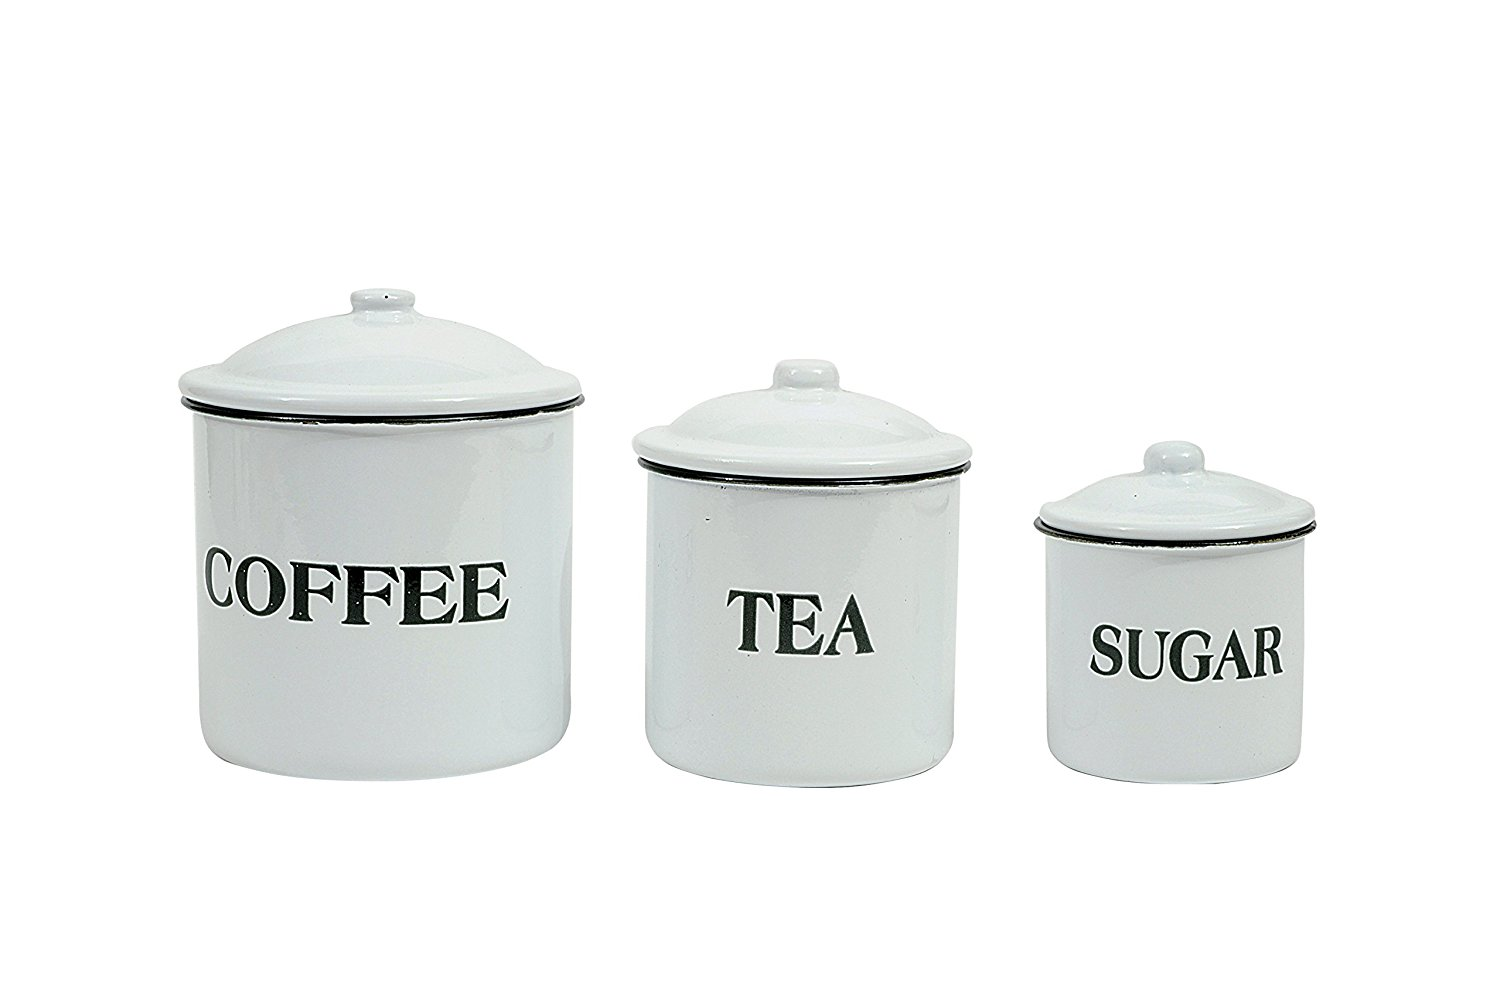 Farmhouse Canisters for Your Country Home - The Country Chic Cottage